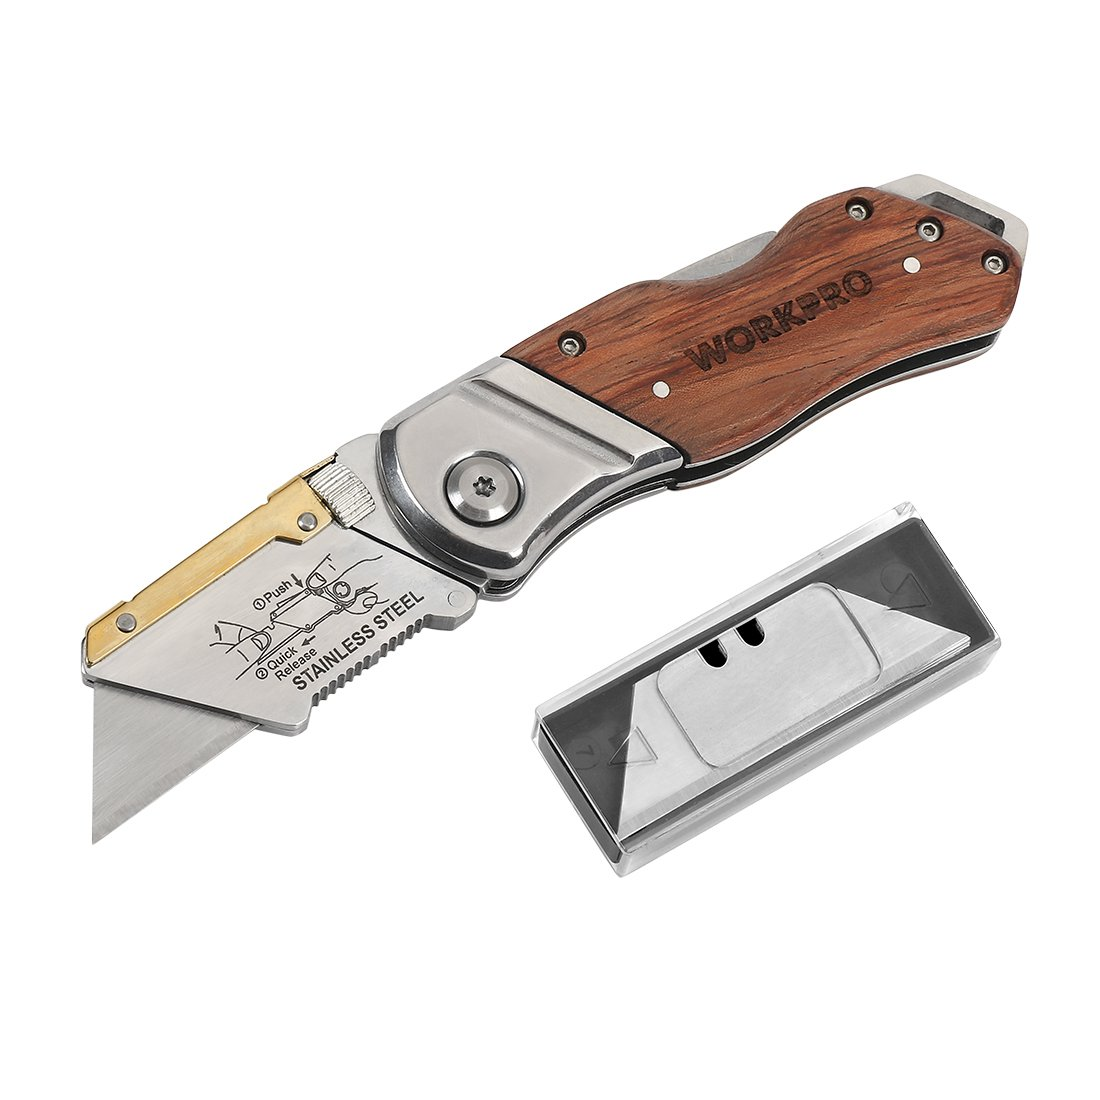 WORKPRO Folding Utility Knife Wood Handle Heavy Duty Cutter with Extra 10-piece Blade